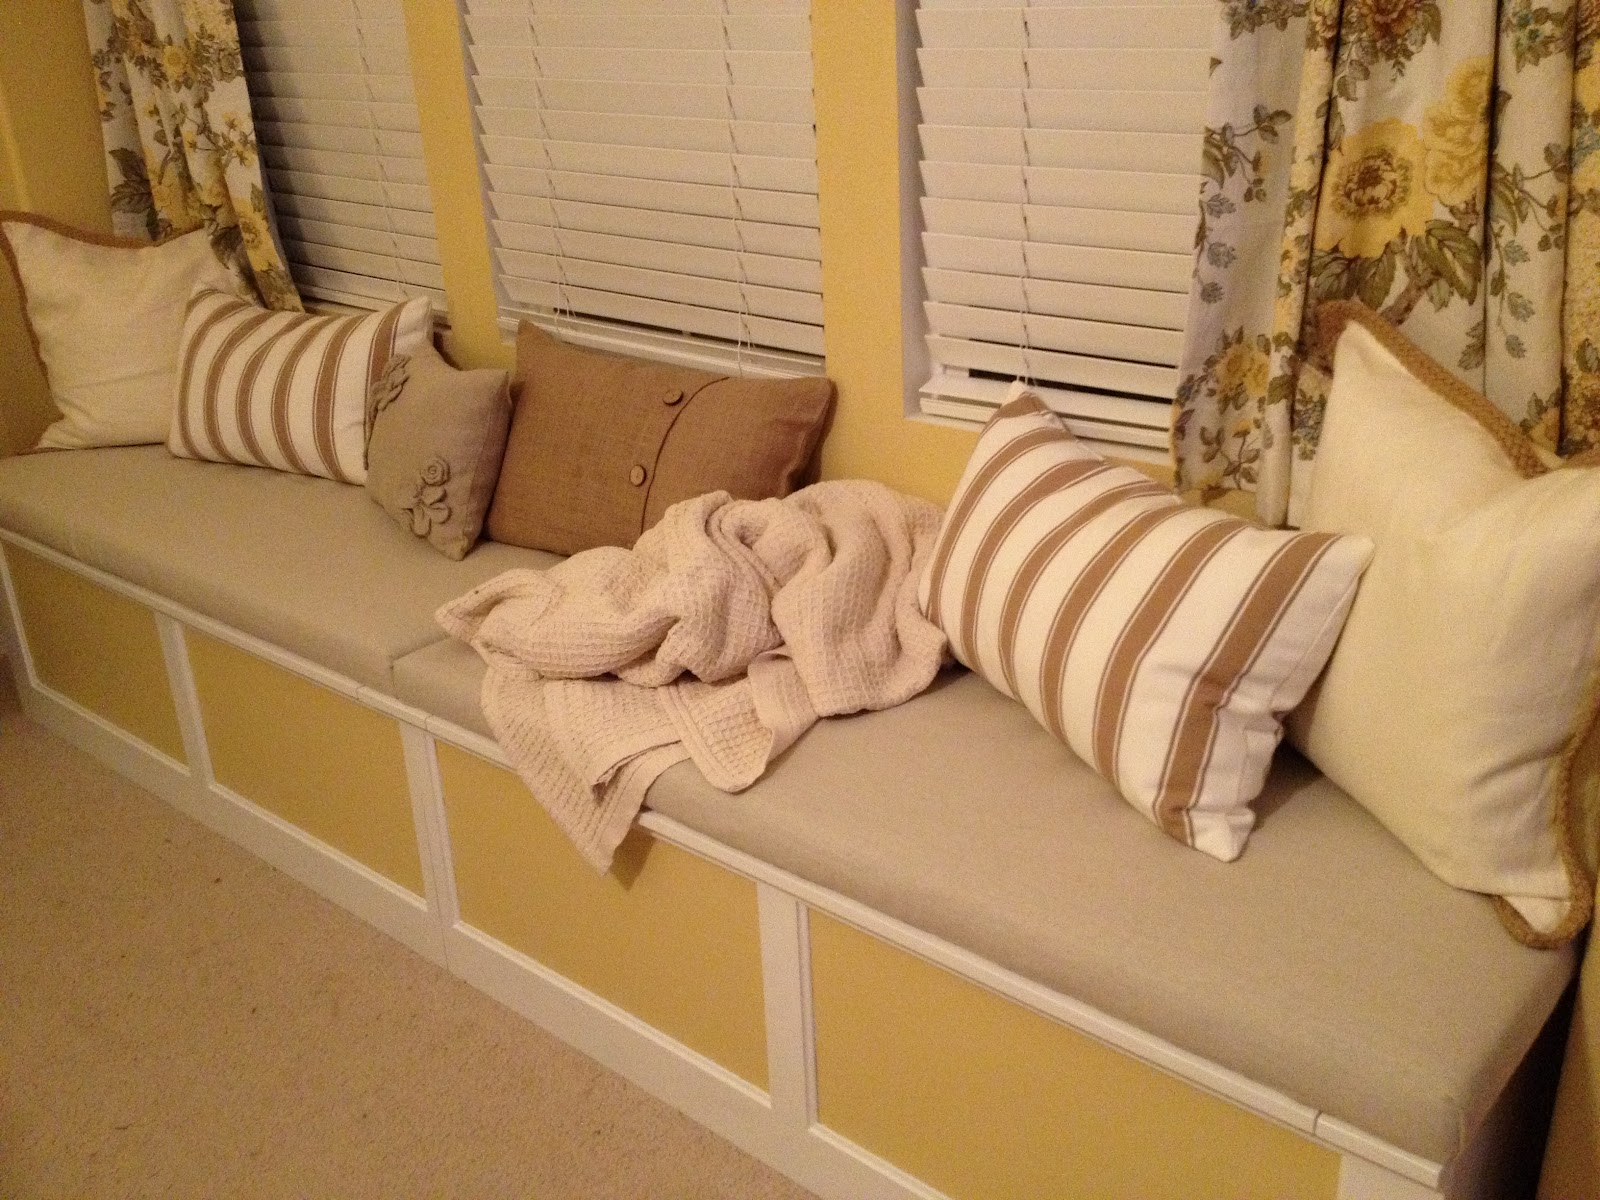 southern belle of the west make your own no sew window seat cushion. Black Bedroom Furniture Sets. Home Design Ideas